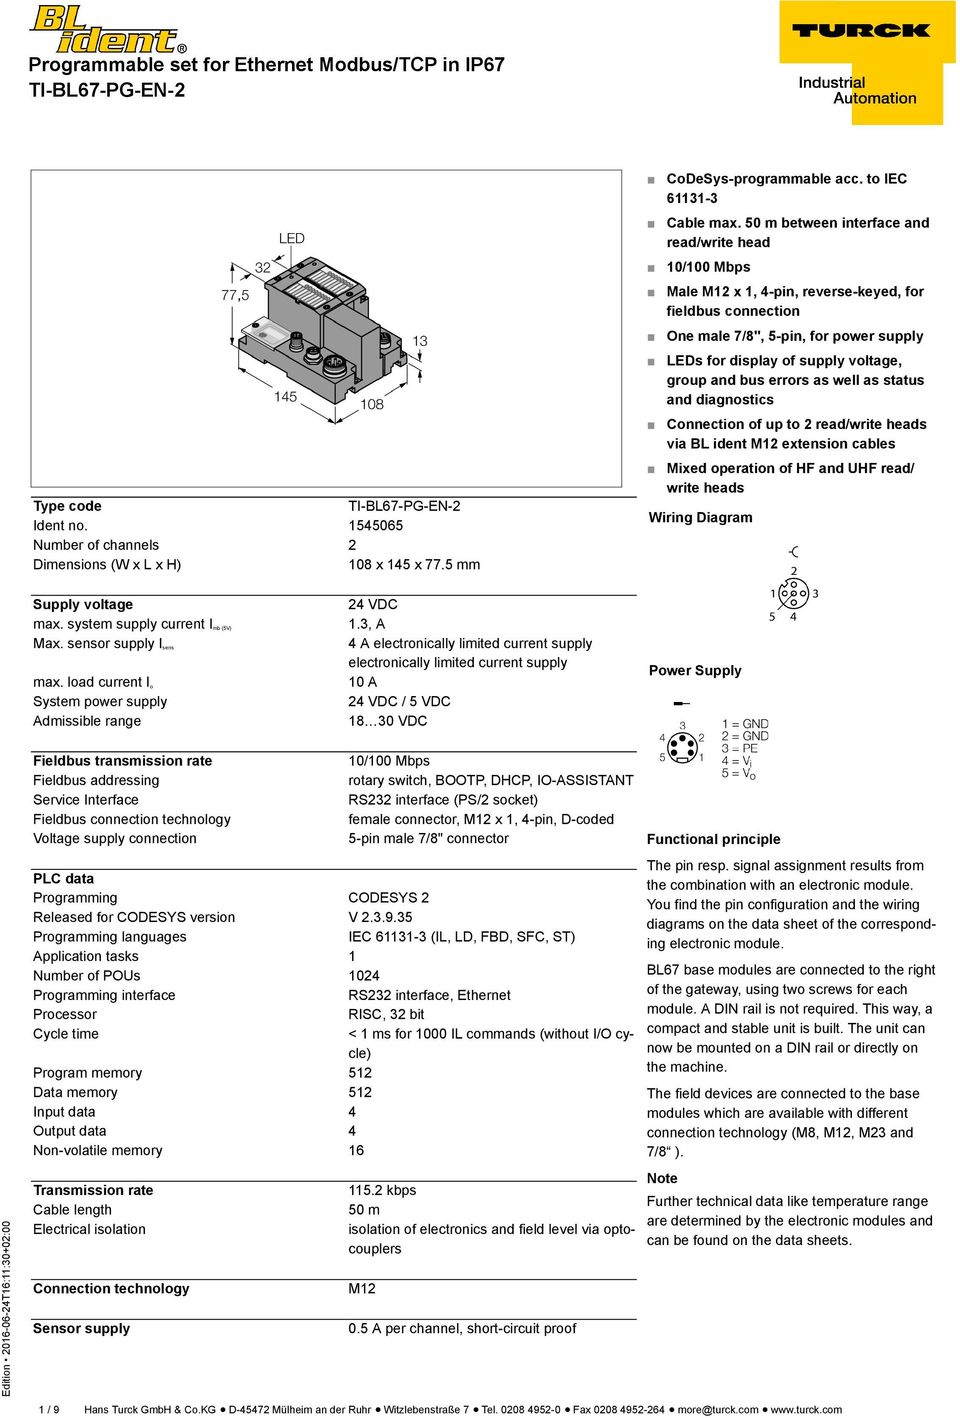 Programmable set for Ethernet Modbus/TCP in IP67 TI-BL67-PG-EN-2 - on din connector pinout diagram, obd2 connector wiring diagram, 4 pin connector wiring diagram, 7 wire connector wiring diagram, m12 connectors 7 pin, db9 connector wiring diagram, 6 pin connector wiring diagram, fanuc alpha series encoder diagram, deutsch connector wiring diagram, phoenix connector wiring diagram, 9 pin connector wiring diagram, m12 sensor cables diagram, 8 pin connector wiring diagram,